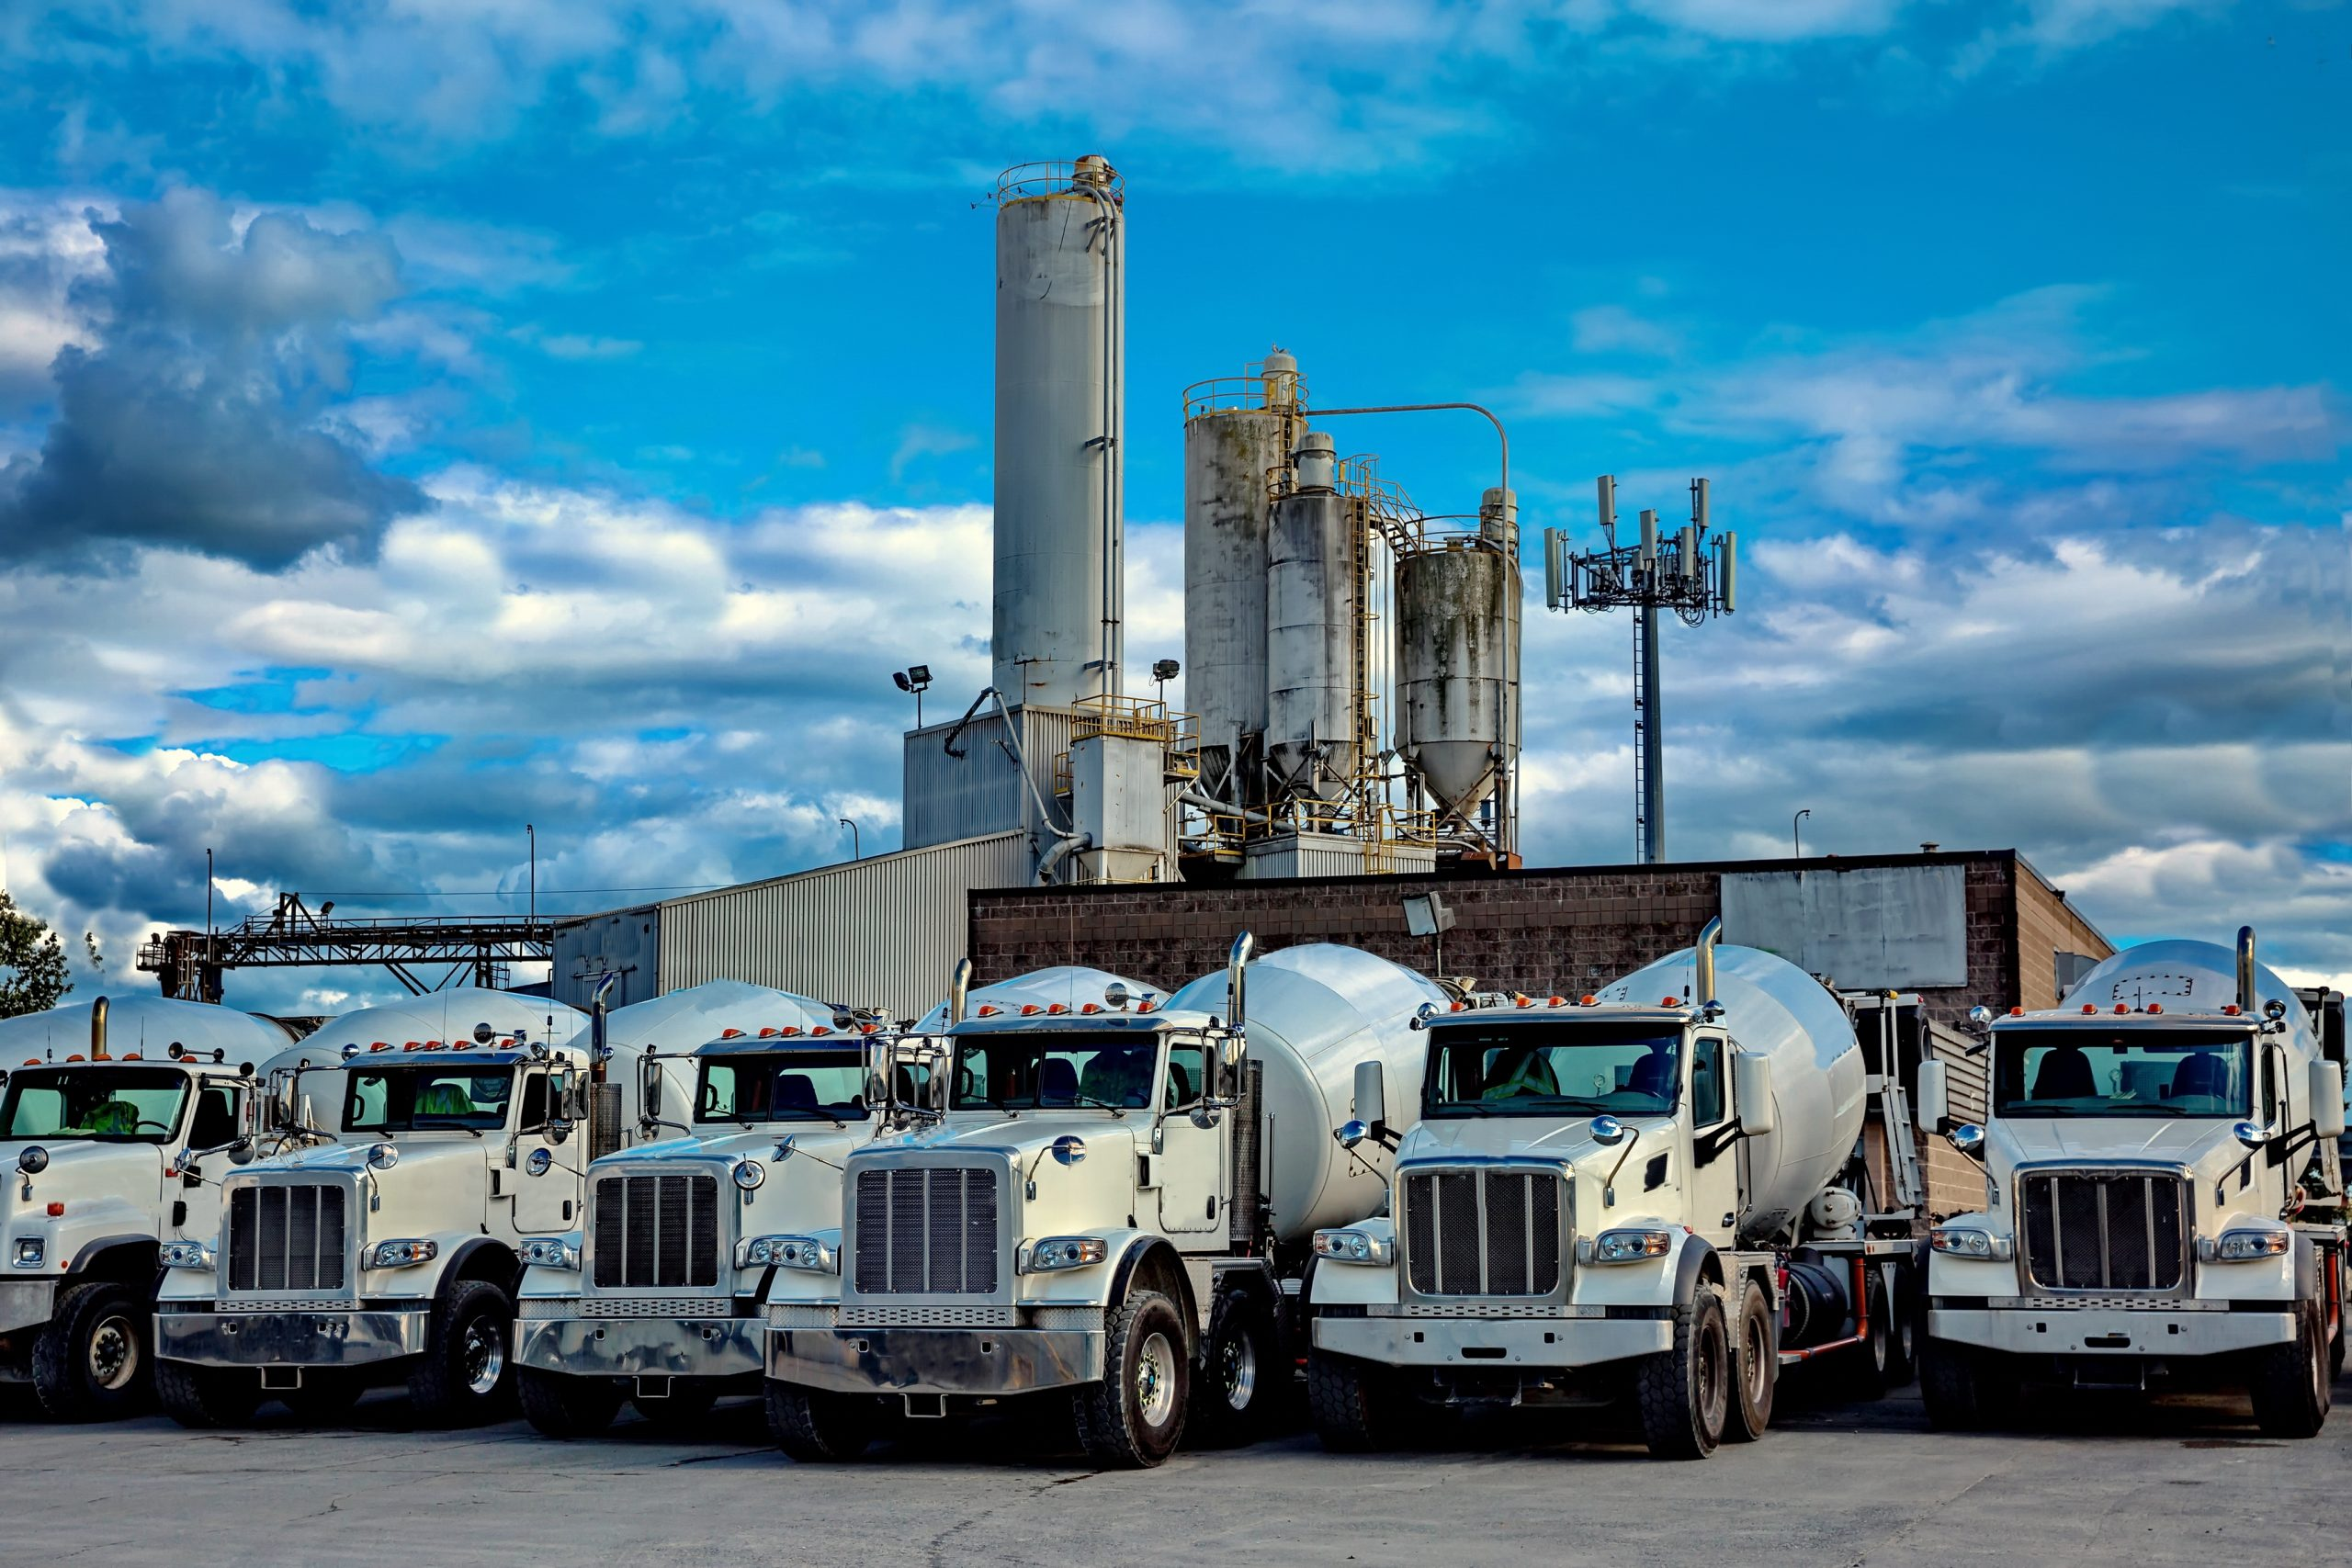 Industrial assets fleet